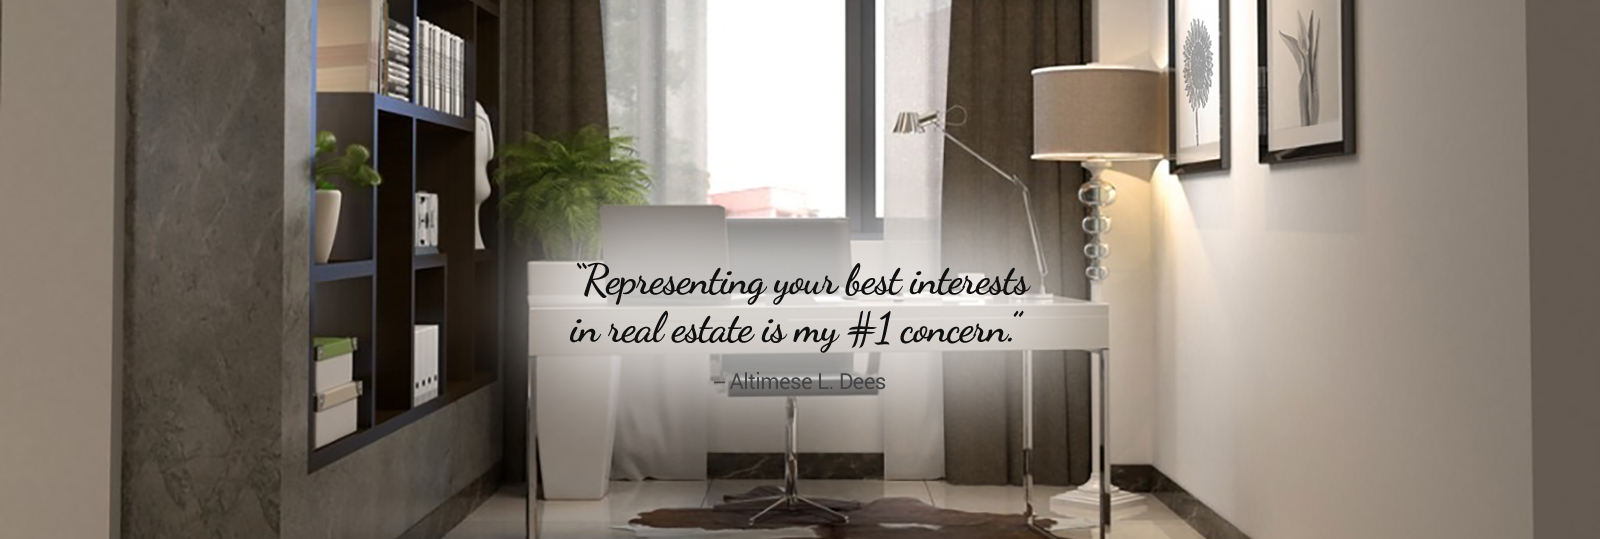 Representing your best interests in real estate is my #1 concern.